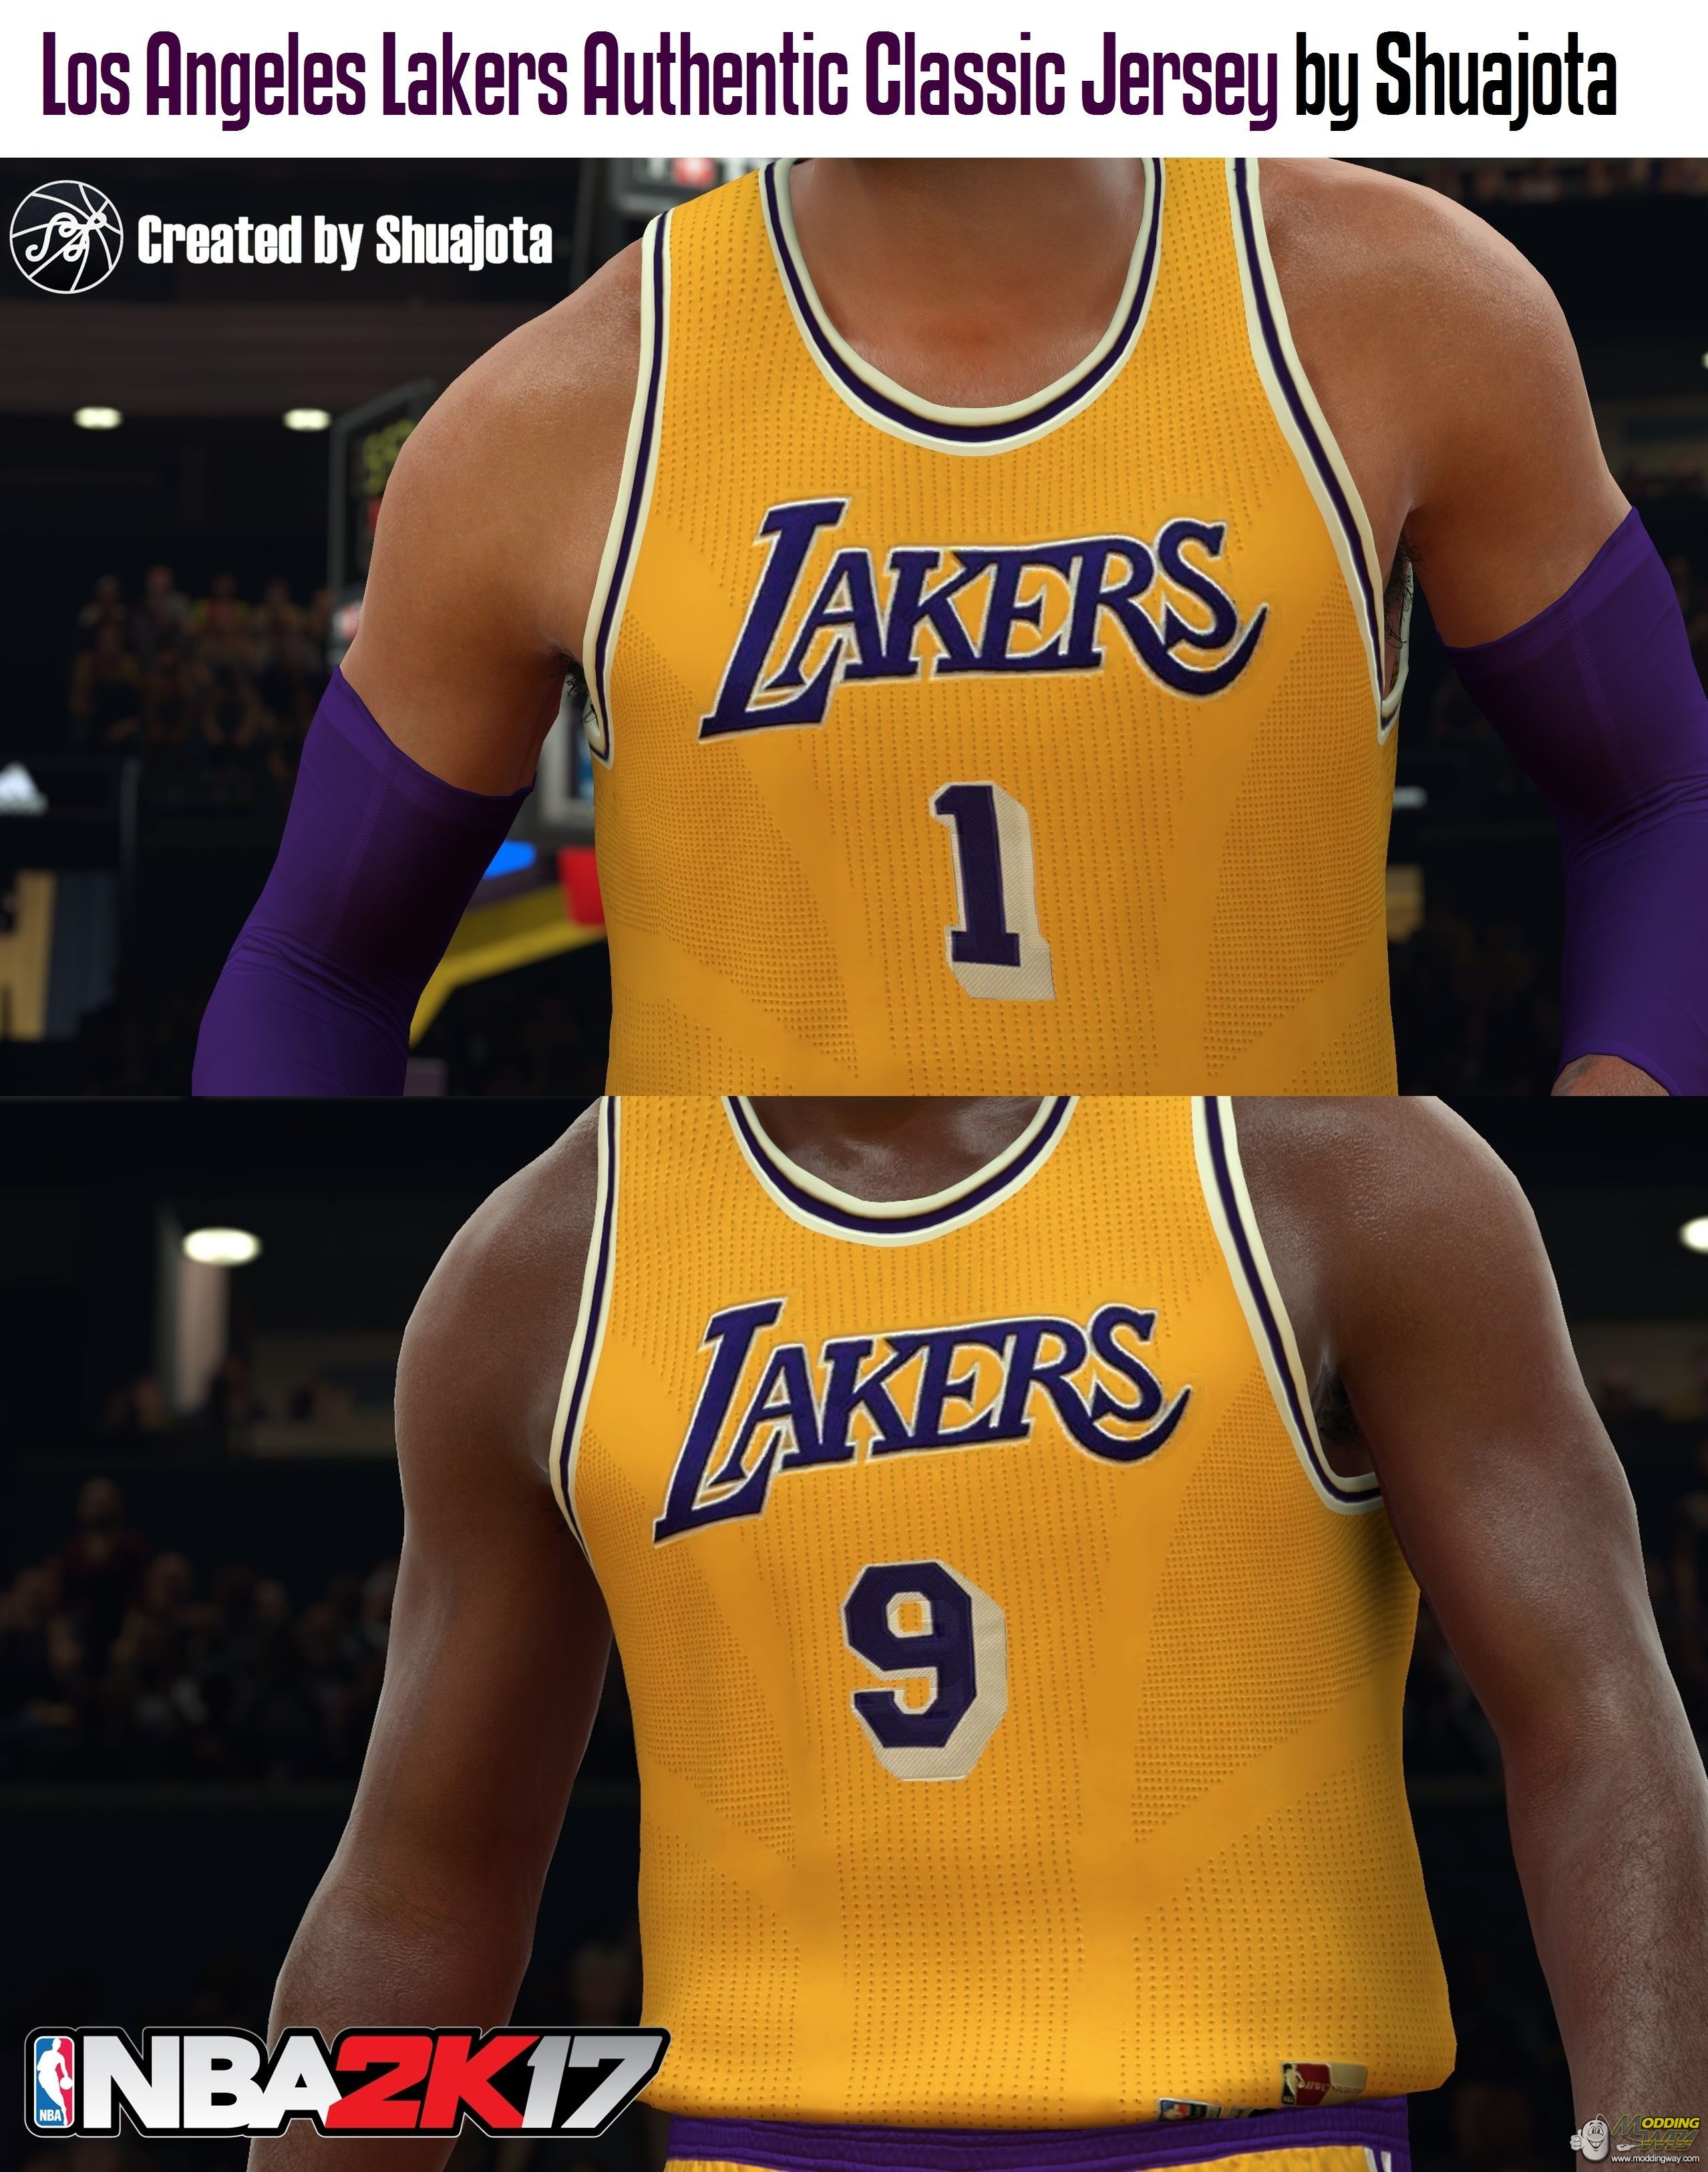 finest selection 3b053 f2ae4 Los Angeles Lakers Authentic Classic Jersey - NBA 2K17 at ...